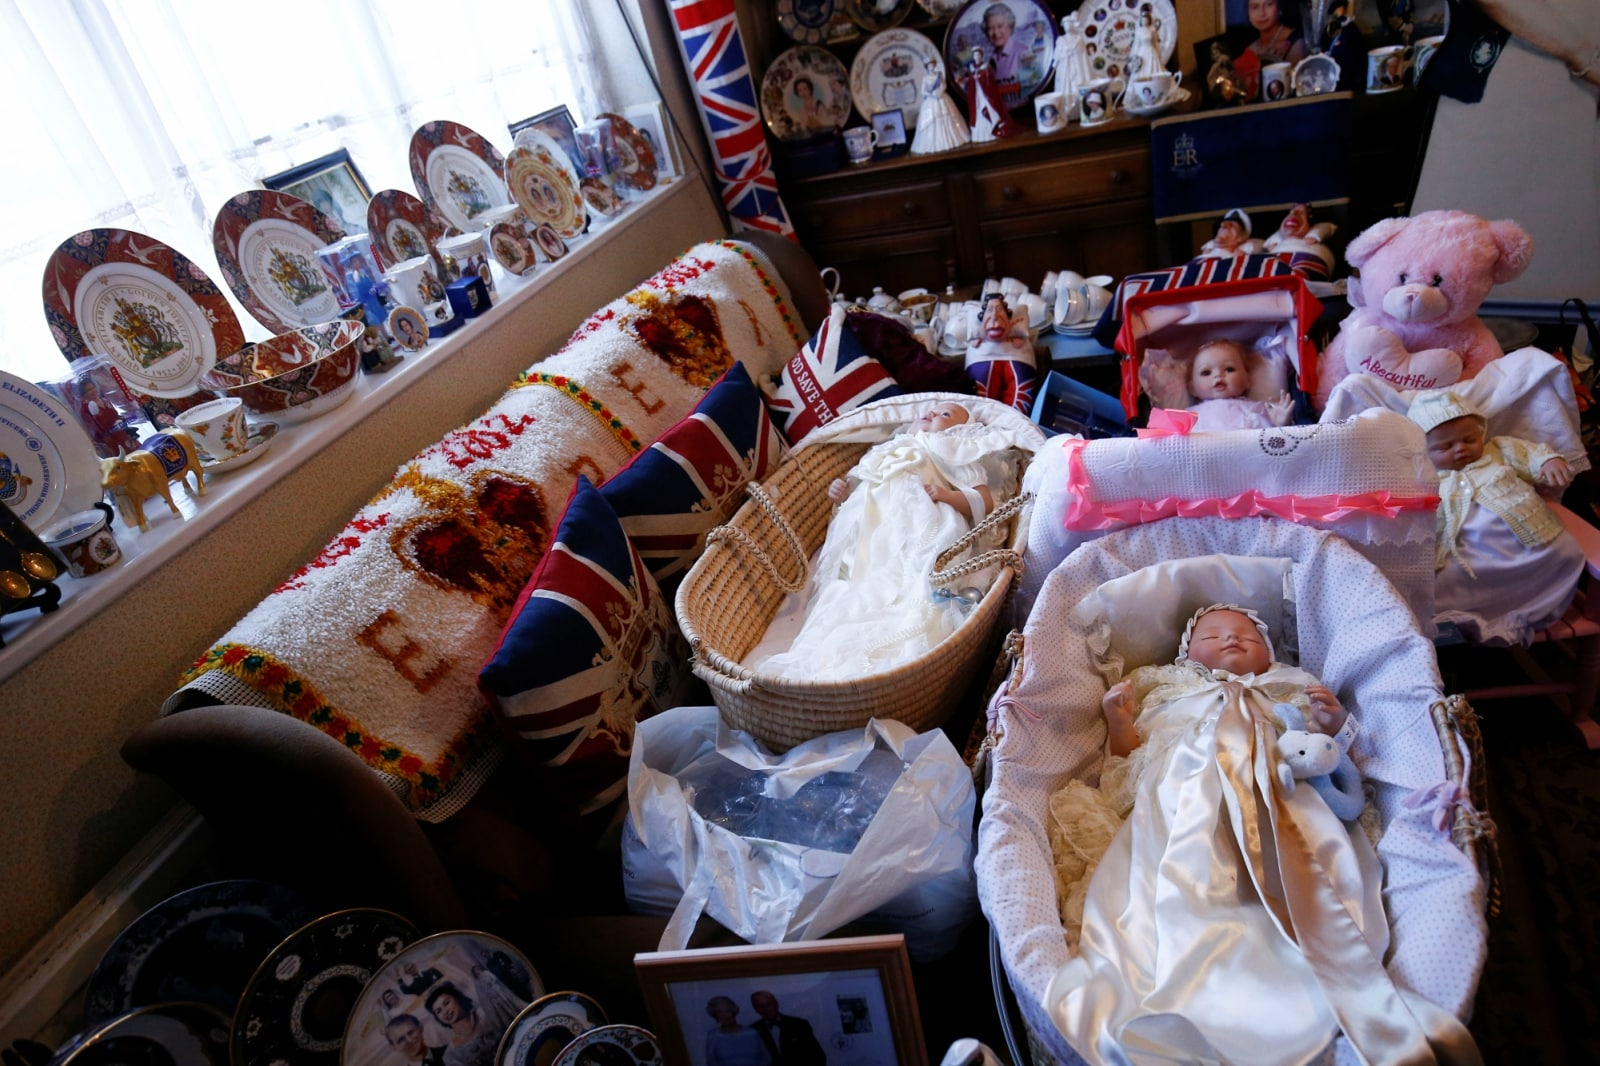 Royal Family memorabilia can be seen inside the home of Royal fan Margaret Tyler, in north London, Britain April 10, 2019. REUTERS/Henry Nicholls/Files